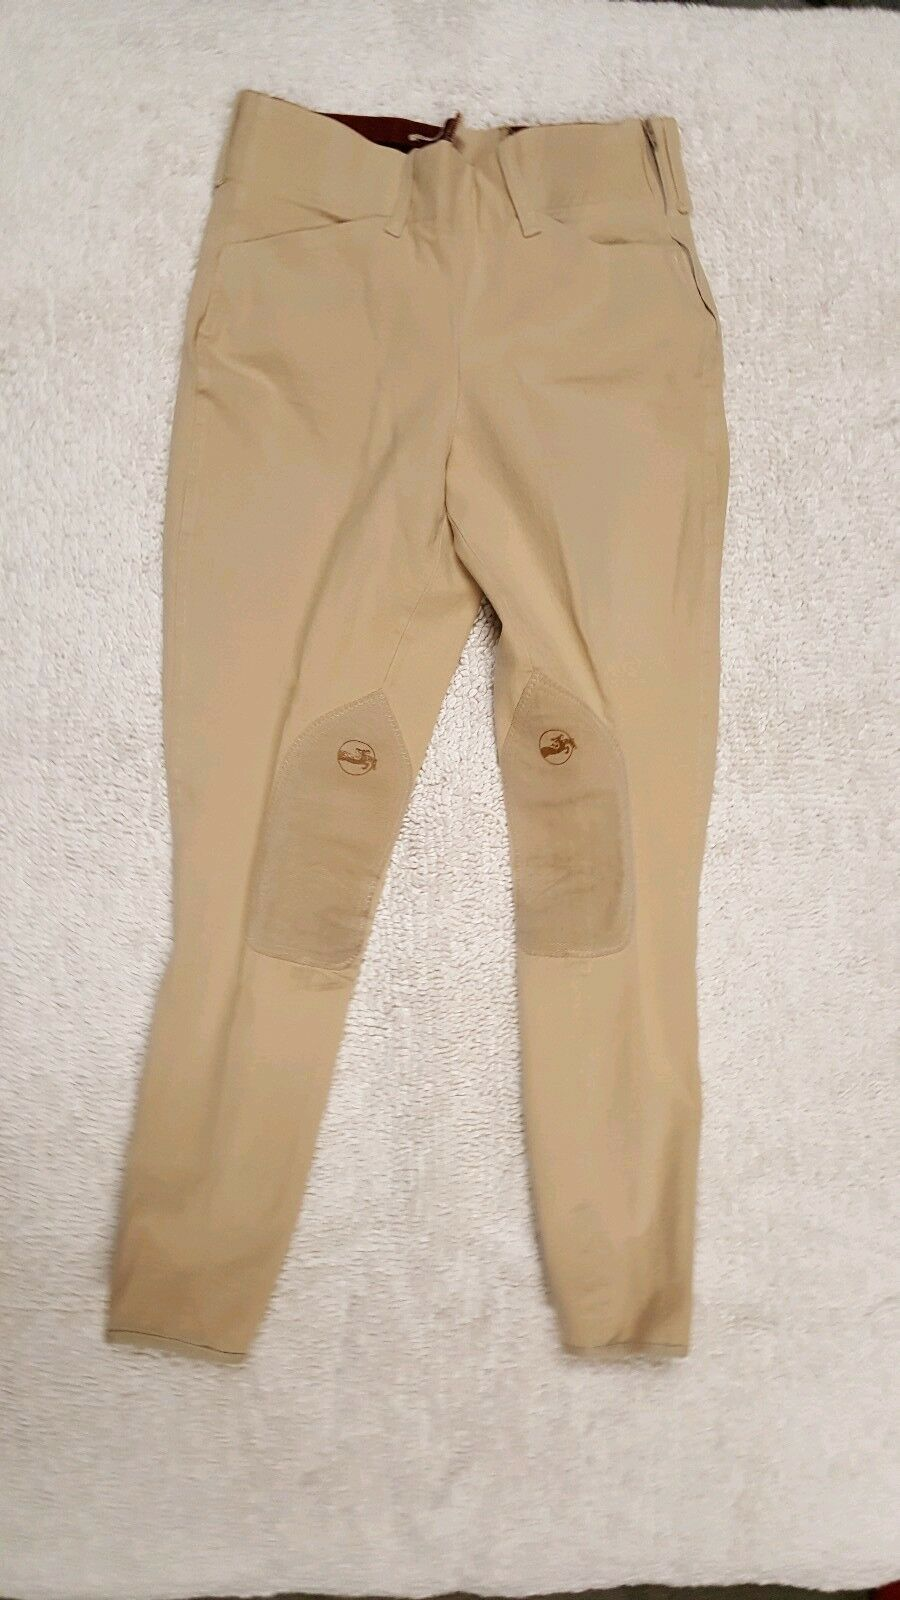 Grand Prix Breeches 26 Long side zip low rise